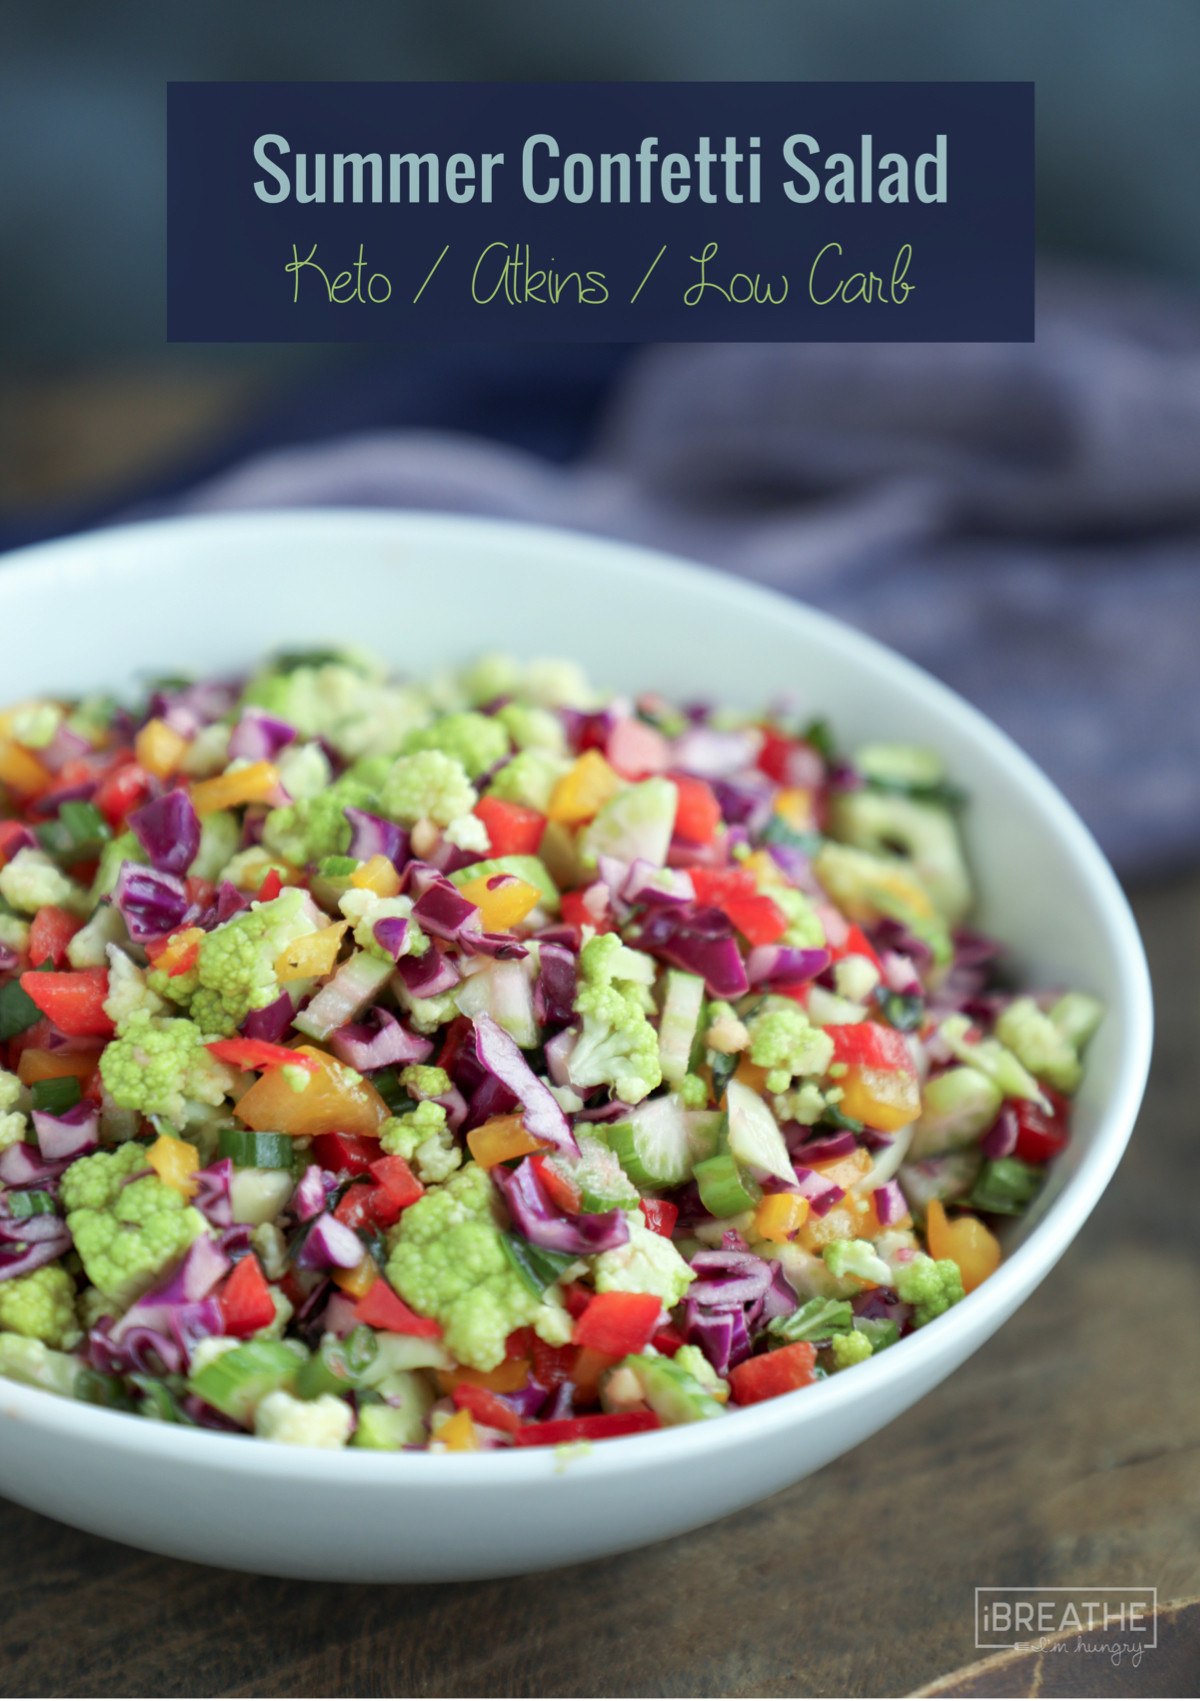 Low Carb Vegetables Recipes  Summer Confetti Salad Low Carb and Gluten Free